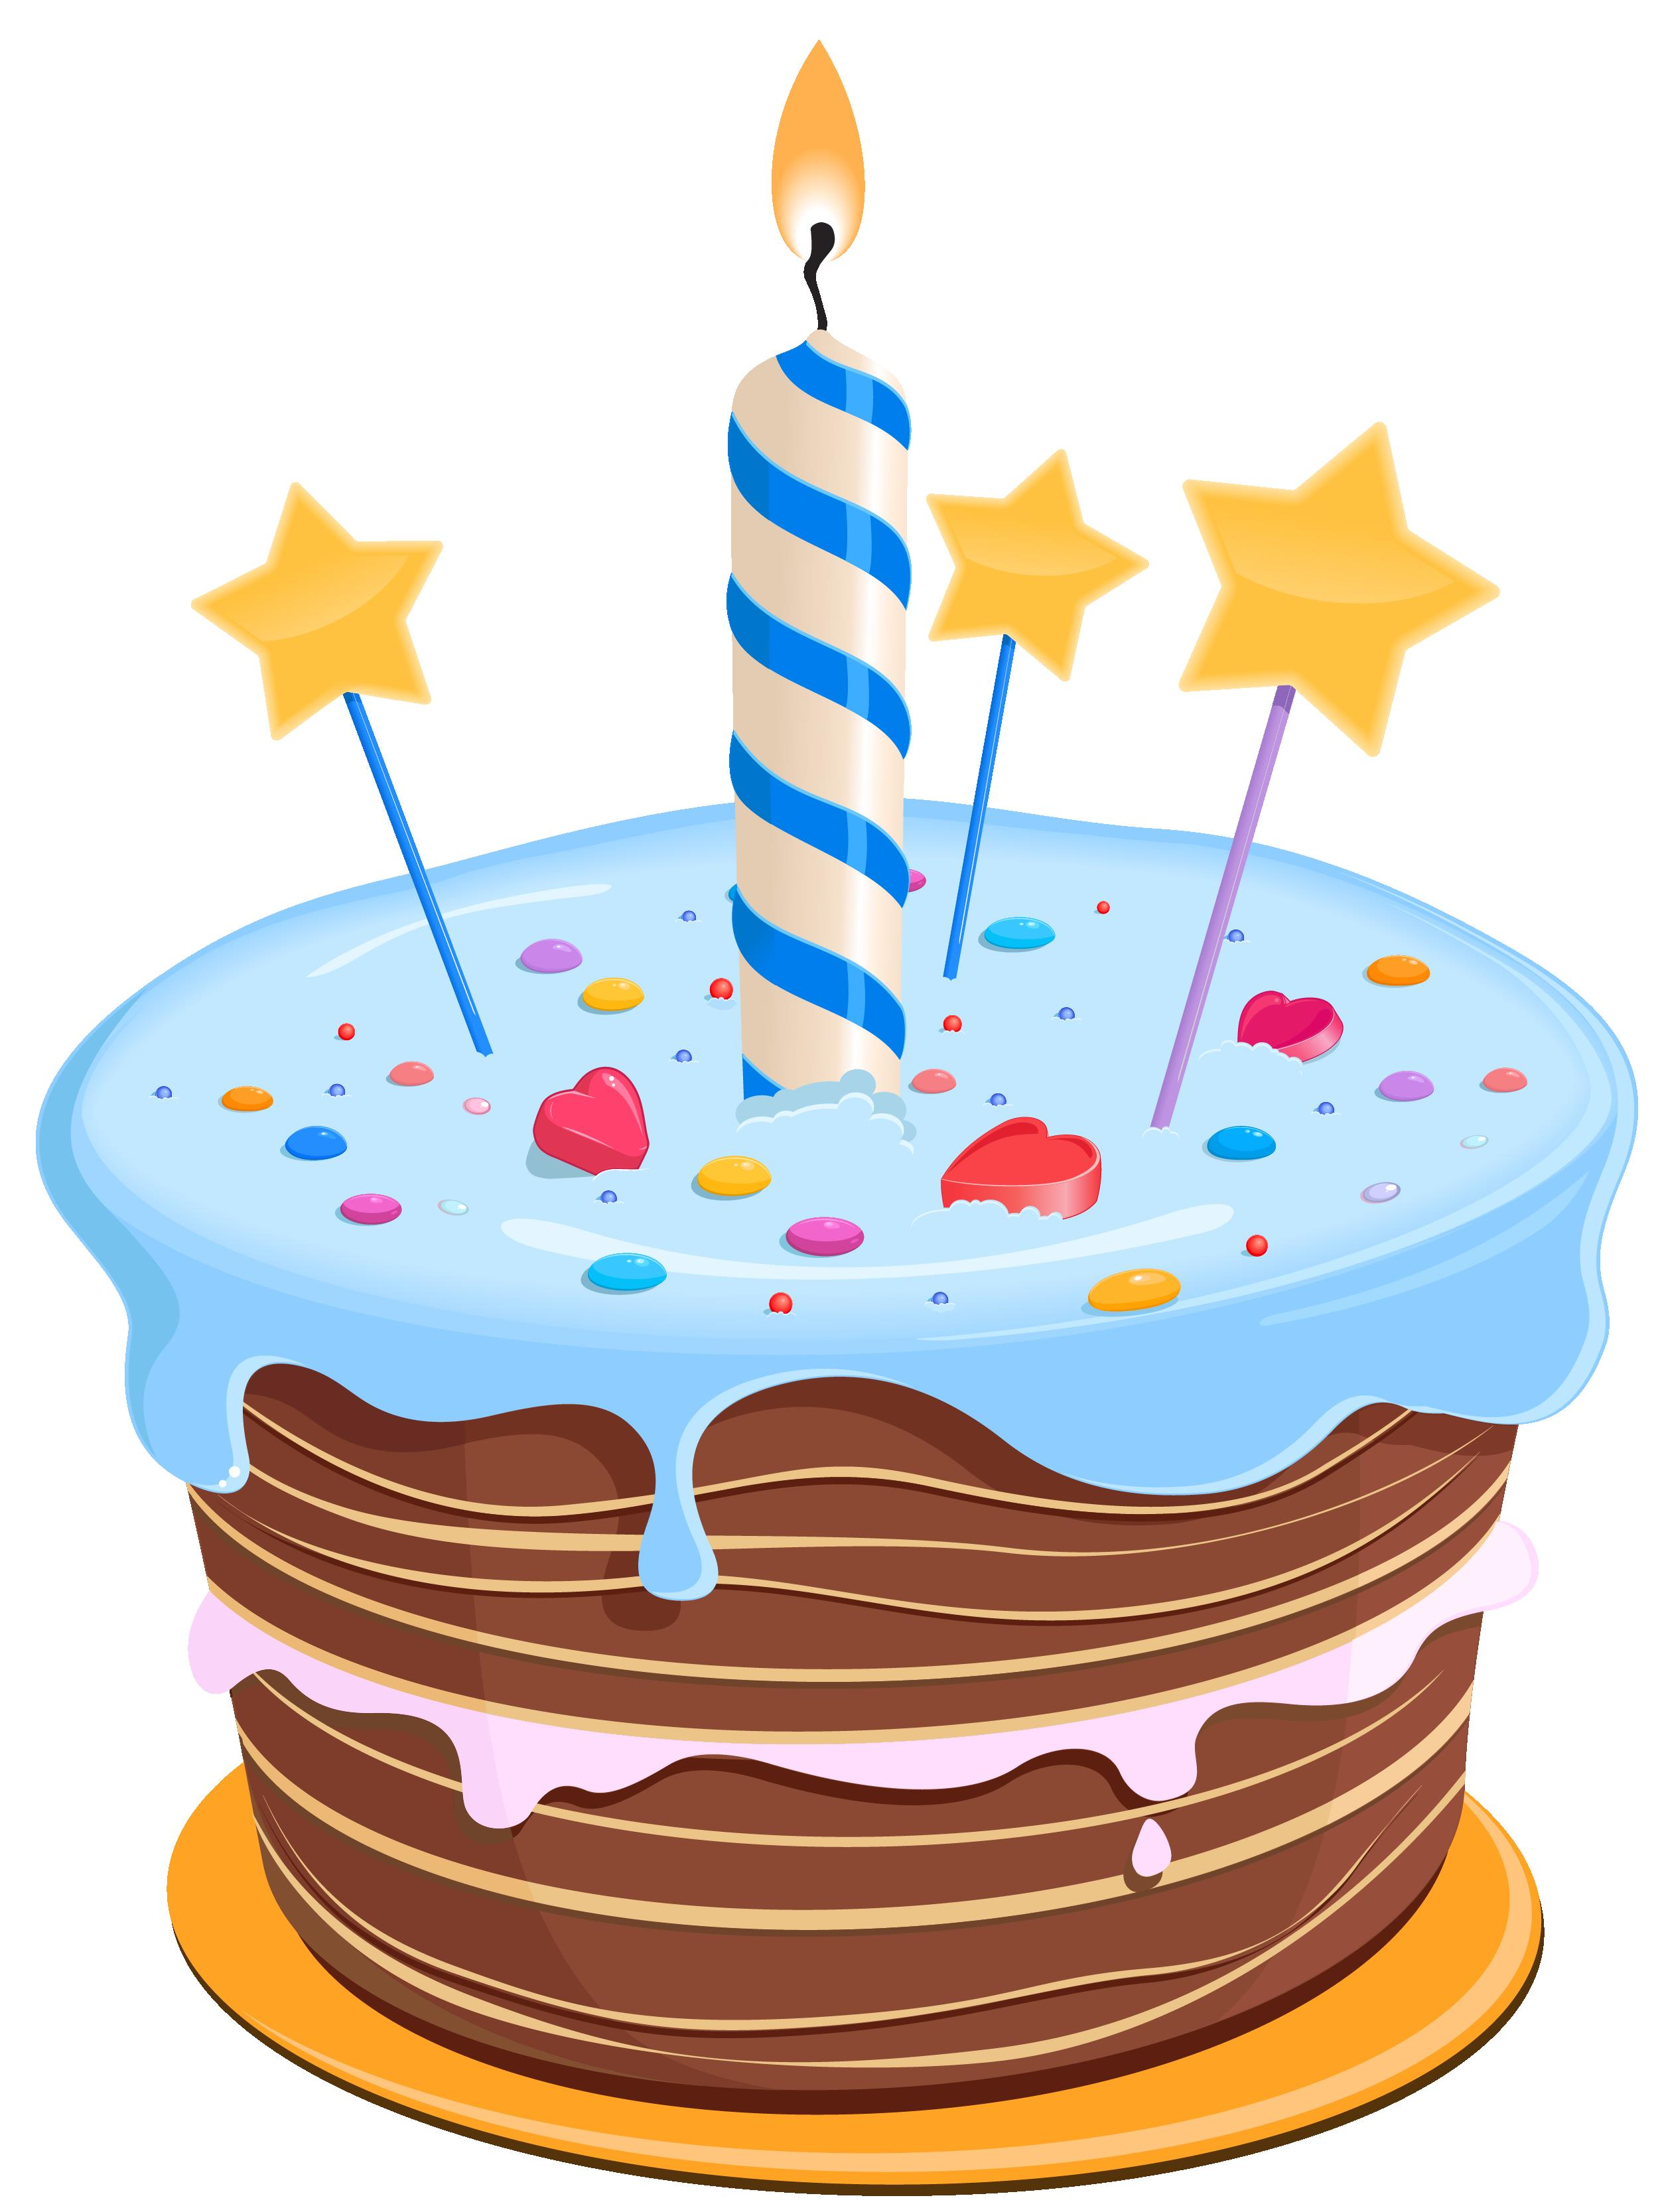 clipart images of birthday cakes ; 580ee238edcf71ab919eccecdb677f43